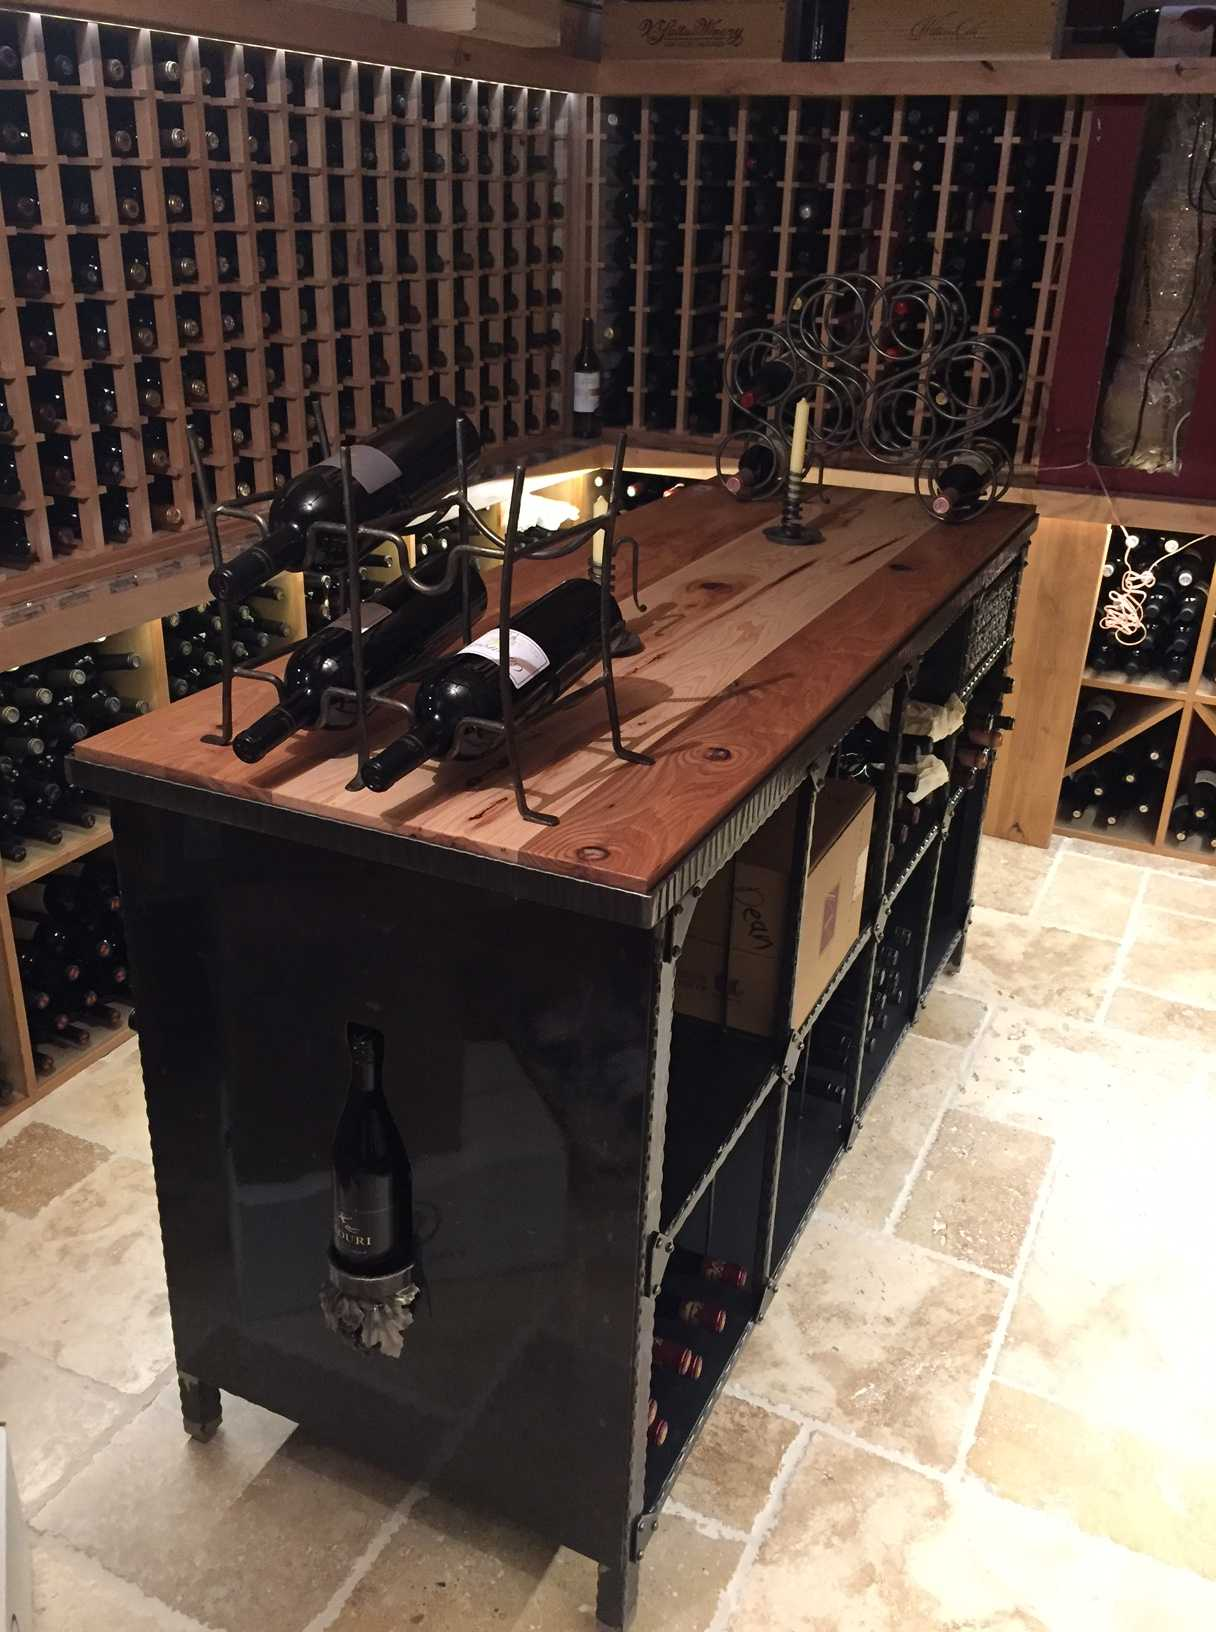 Keenan Wine Cellar In Chicago